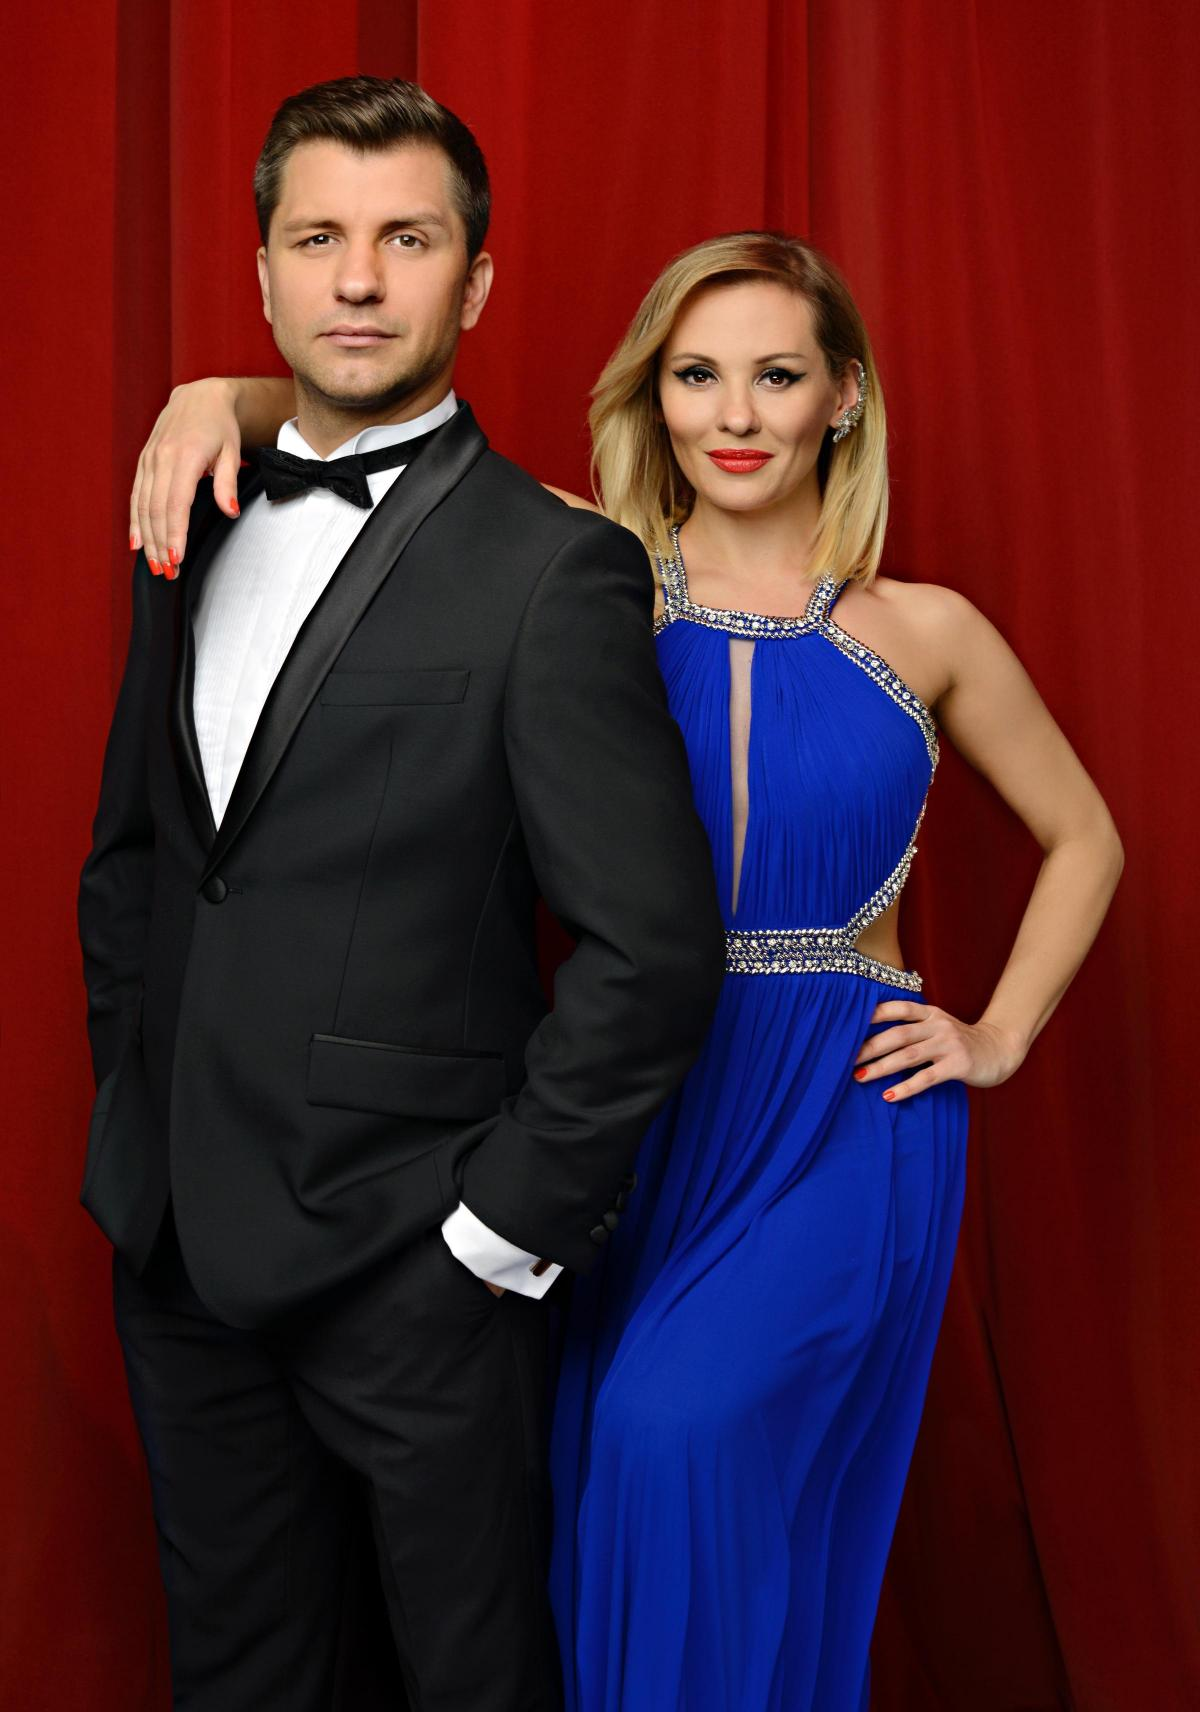 Watch and meet strictly come dancing star pasha kovalev daily echo watch and meet strictly come dancing star pasha kovalev m4hsunfo